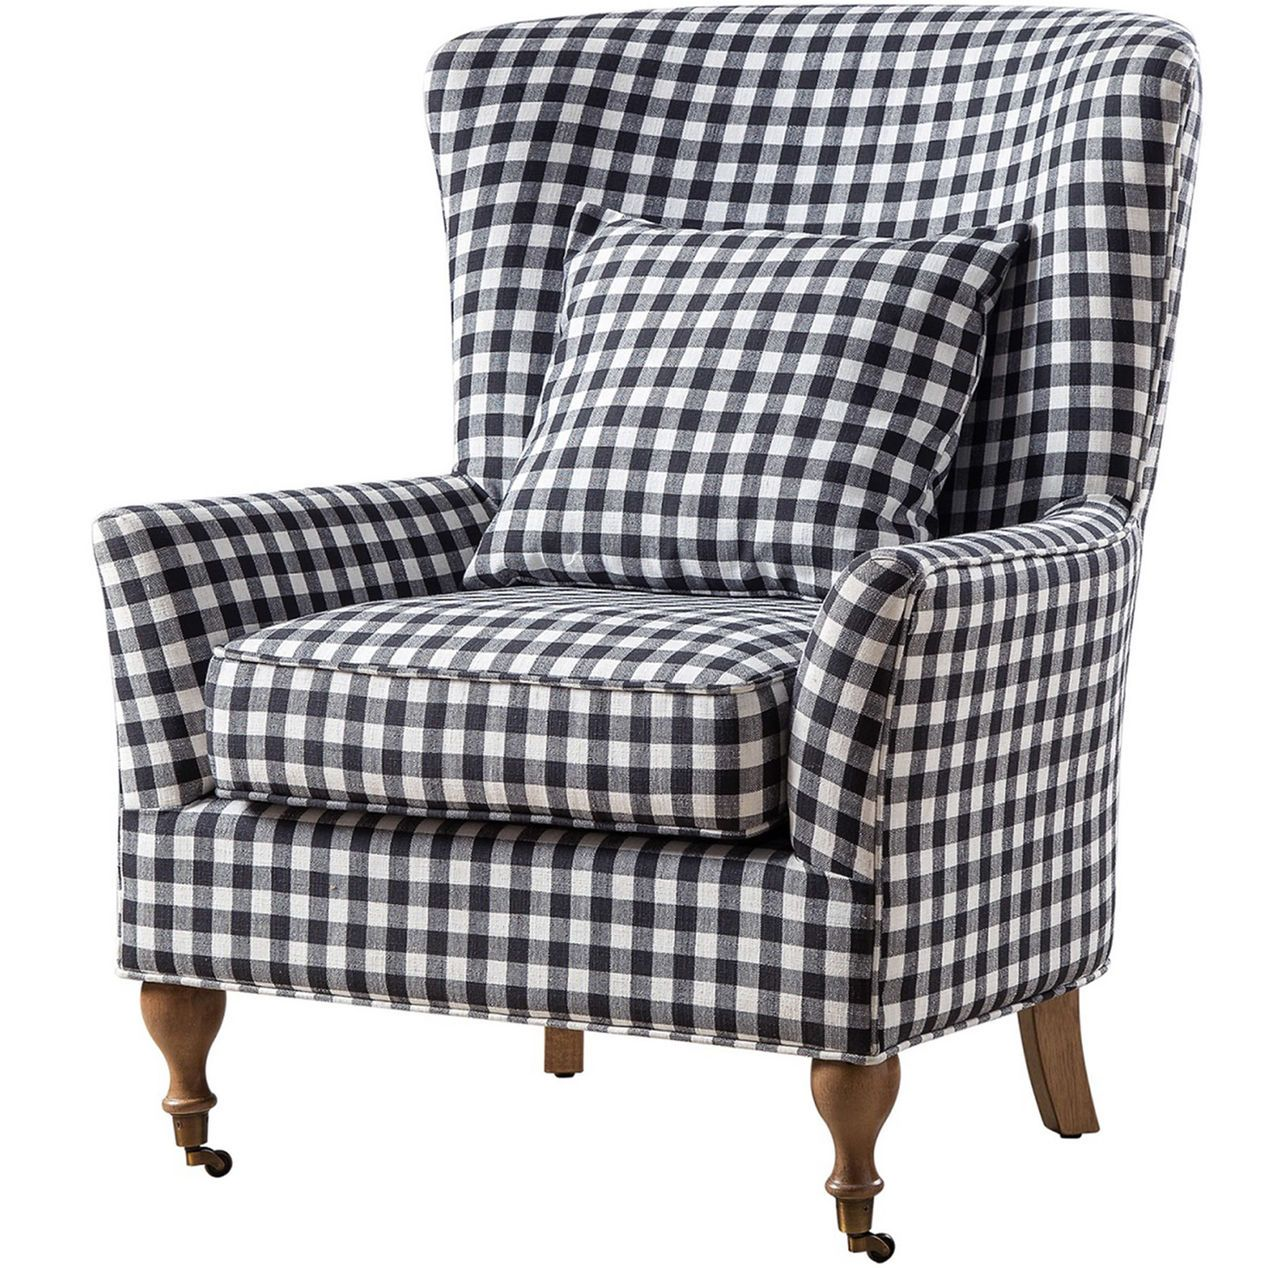 Lancaster Plaid Chair Plaid Chair Furniture Chair #plaid #chairs #living #room